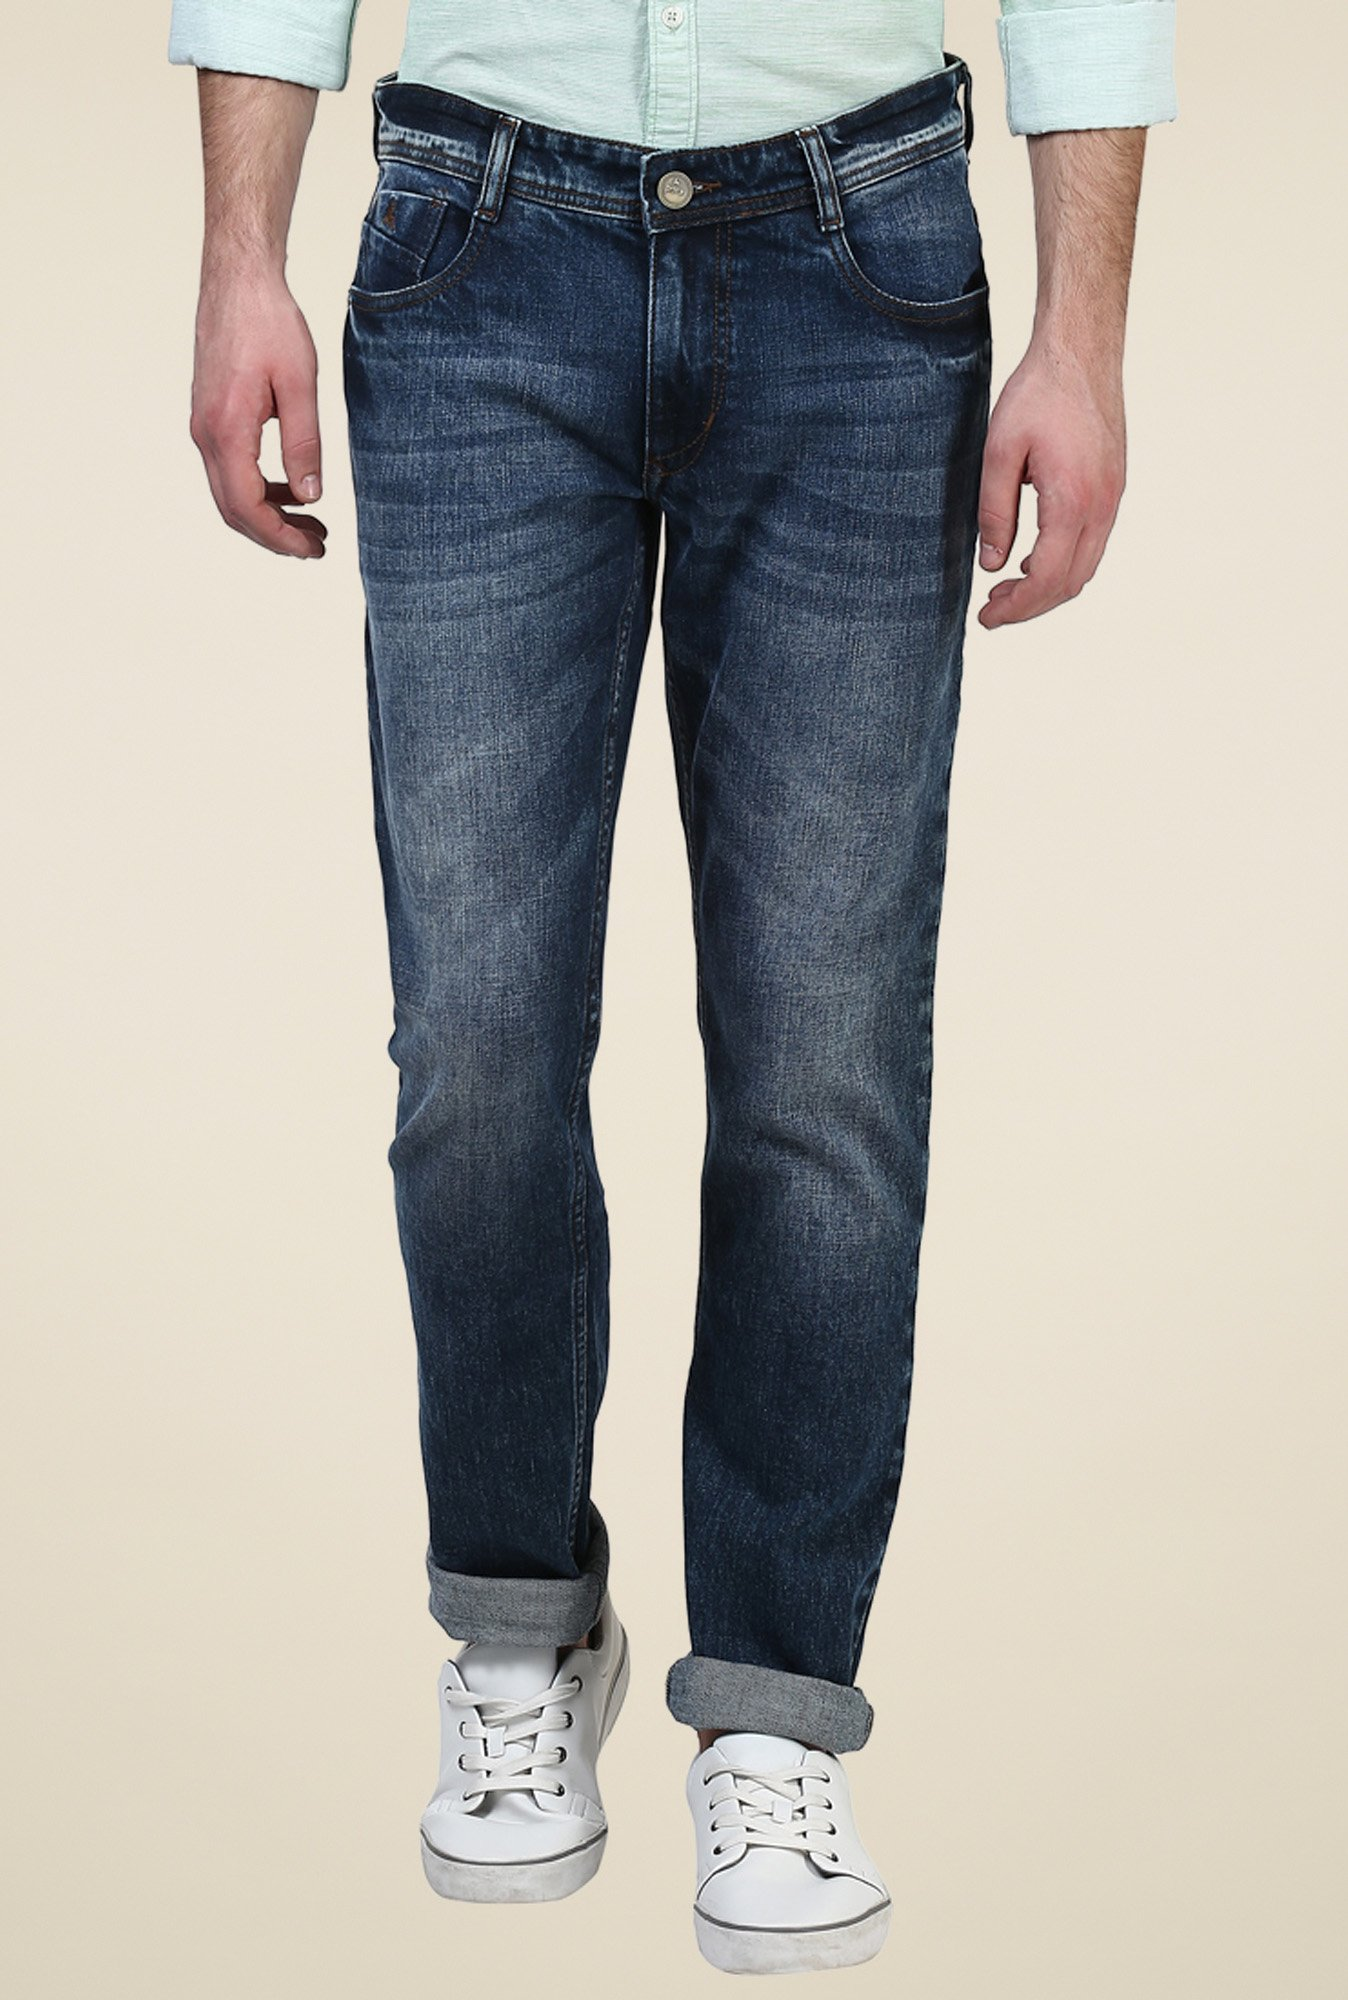 Parx Dark Blue Tapered Fit Mid Rise Jeans